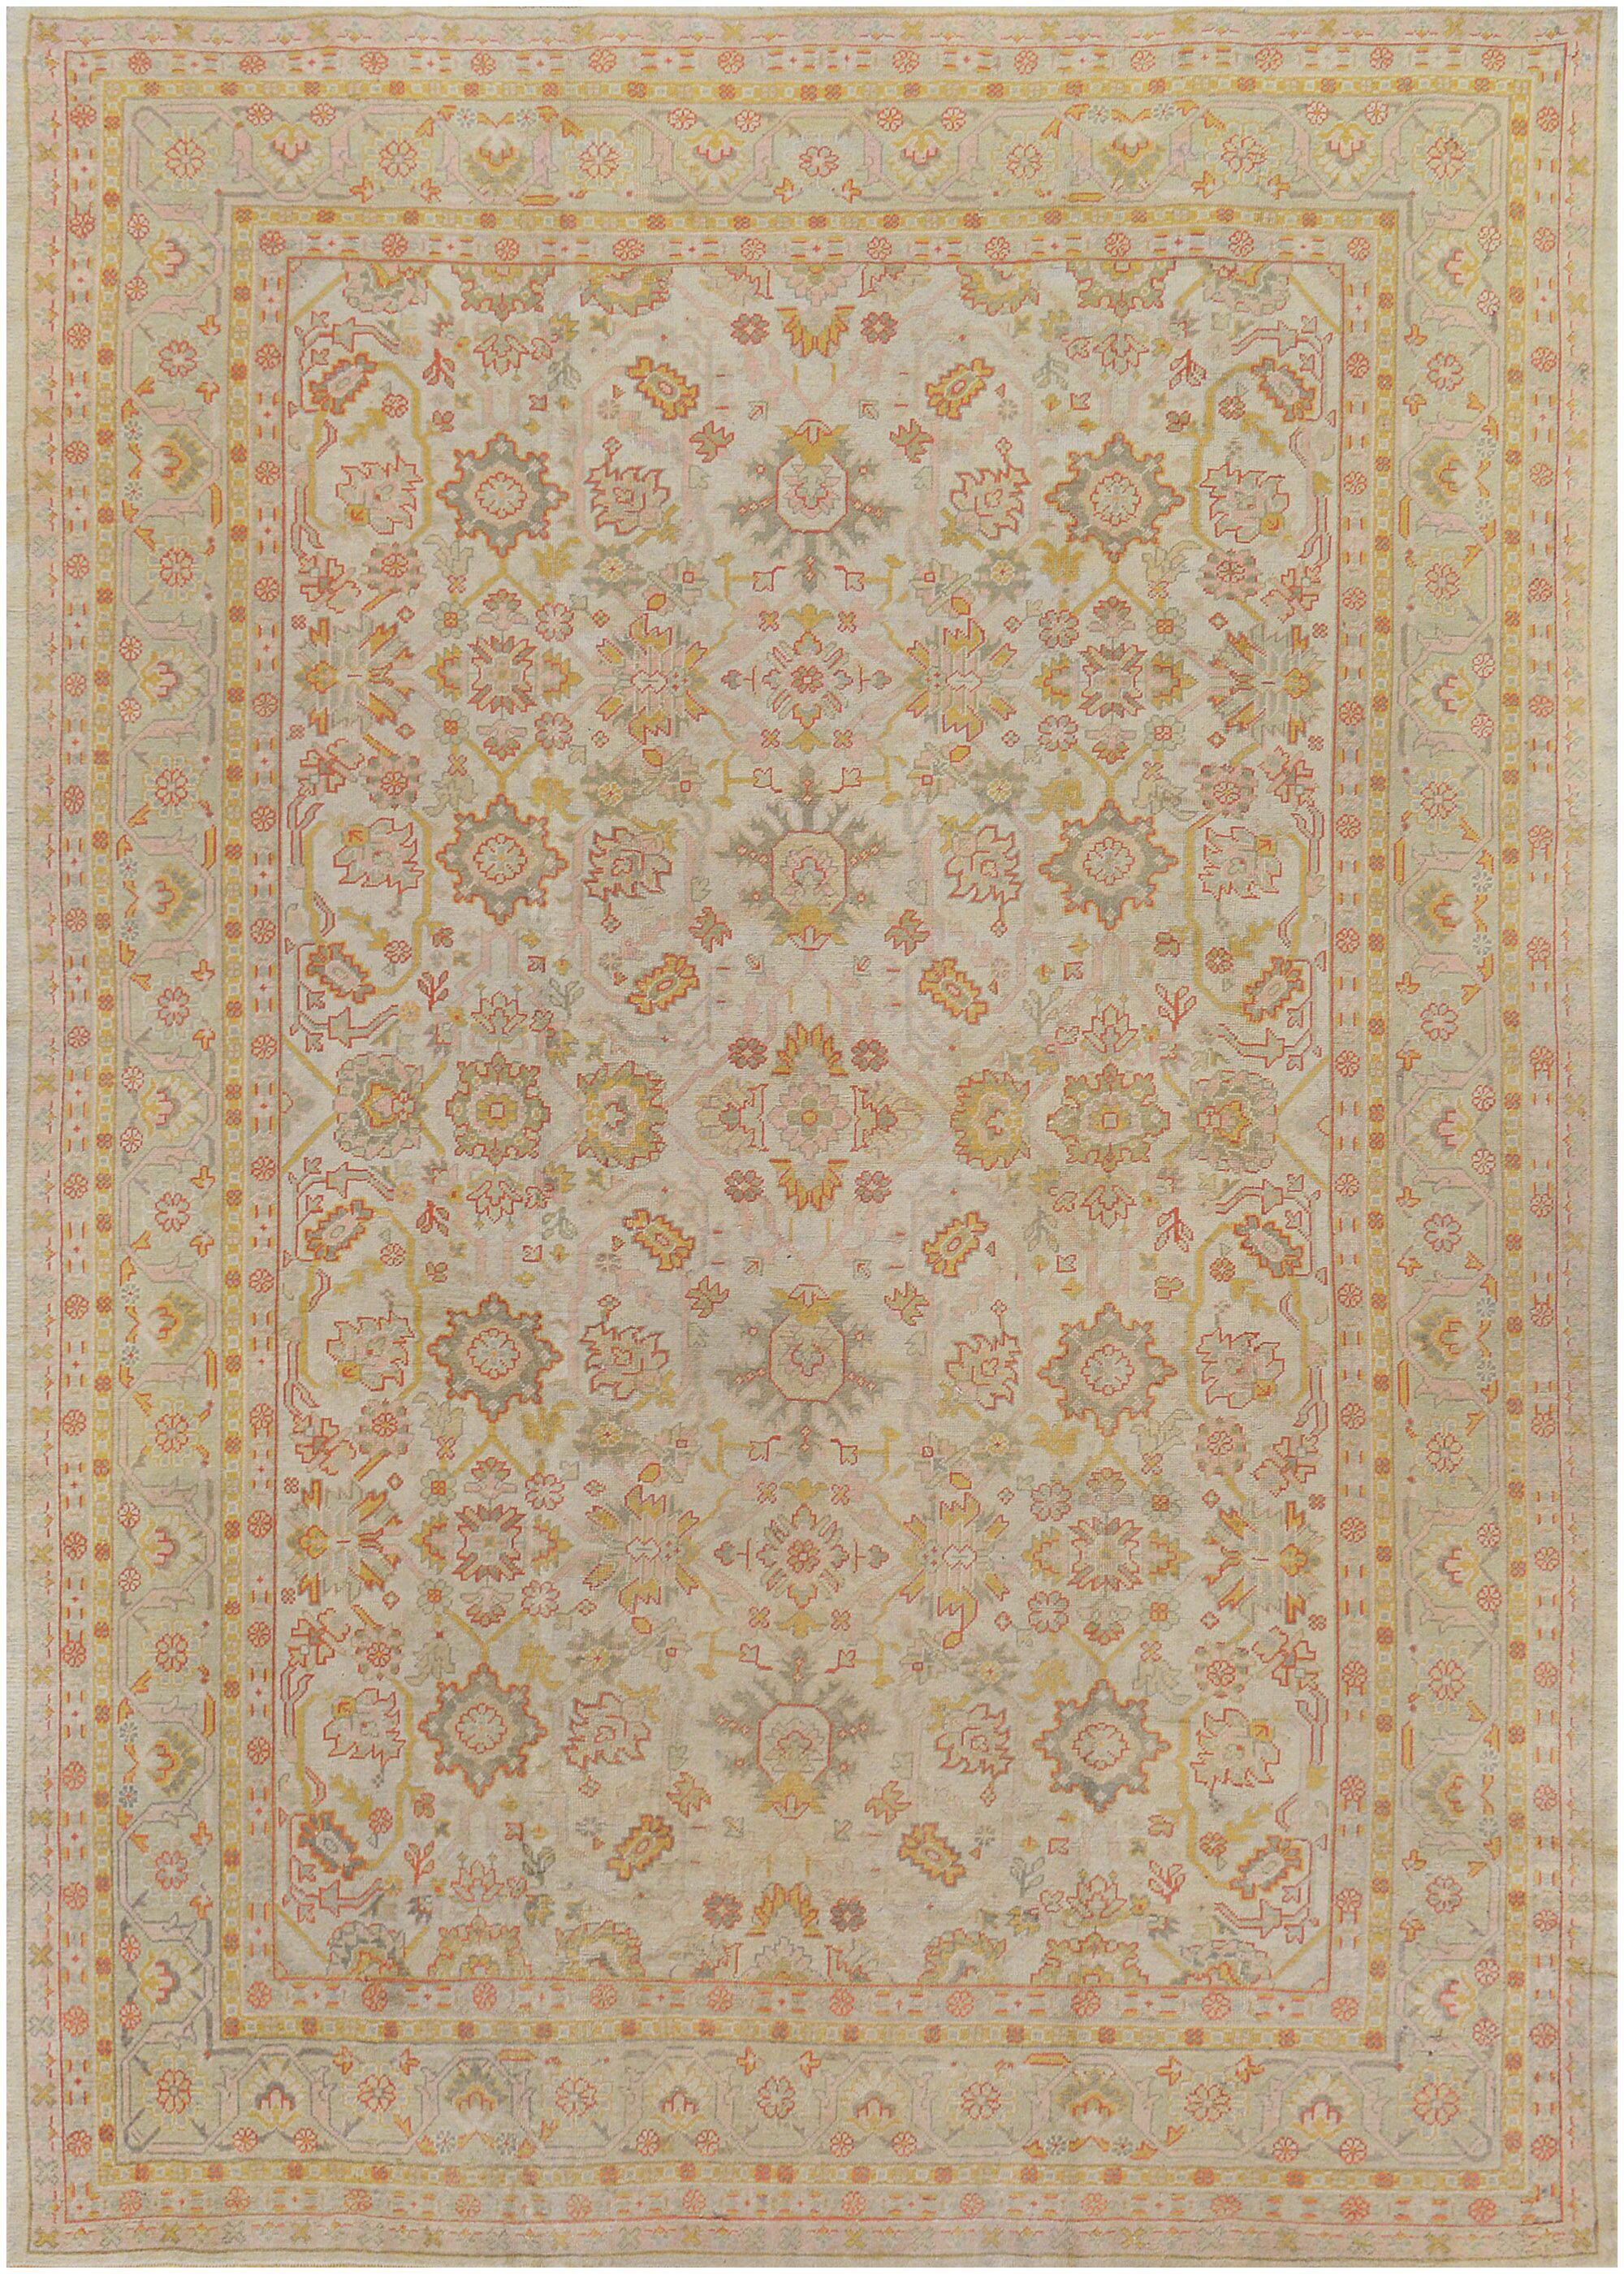 One-of-a-Kind Antique Oushak Handwoven Wool Ivory Indoor Area Rug